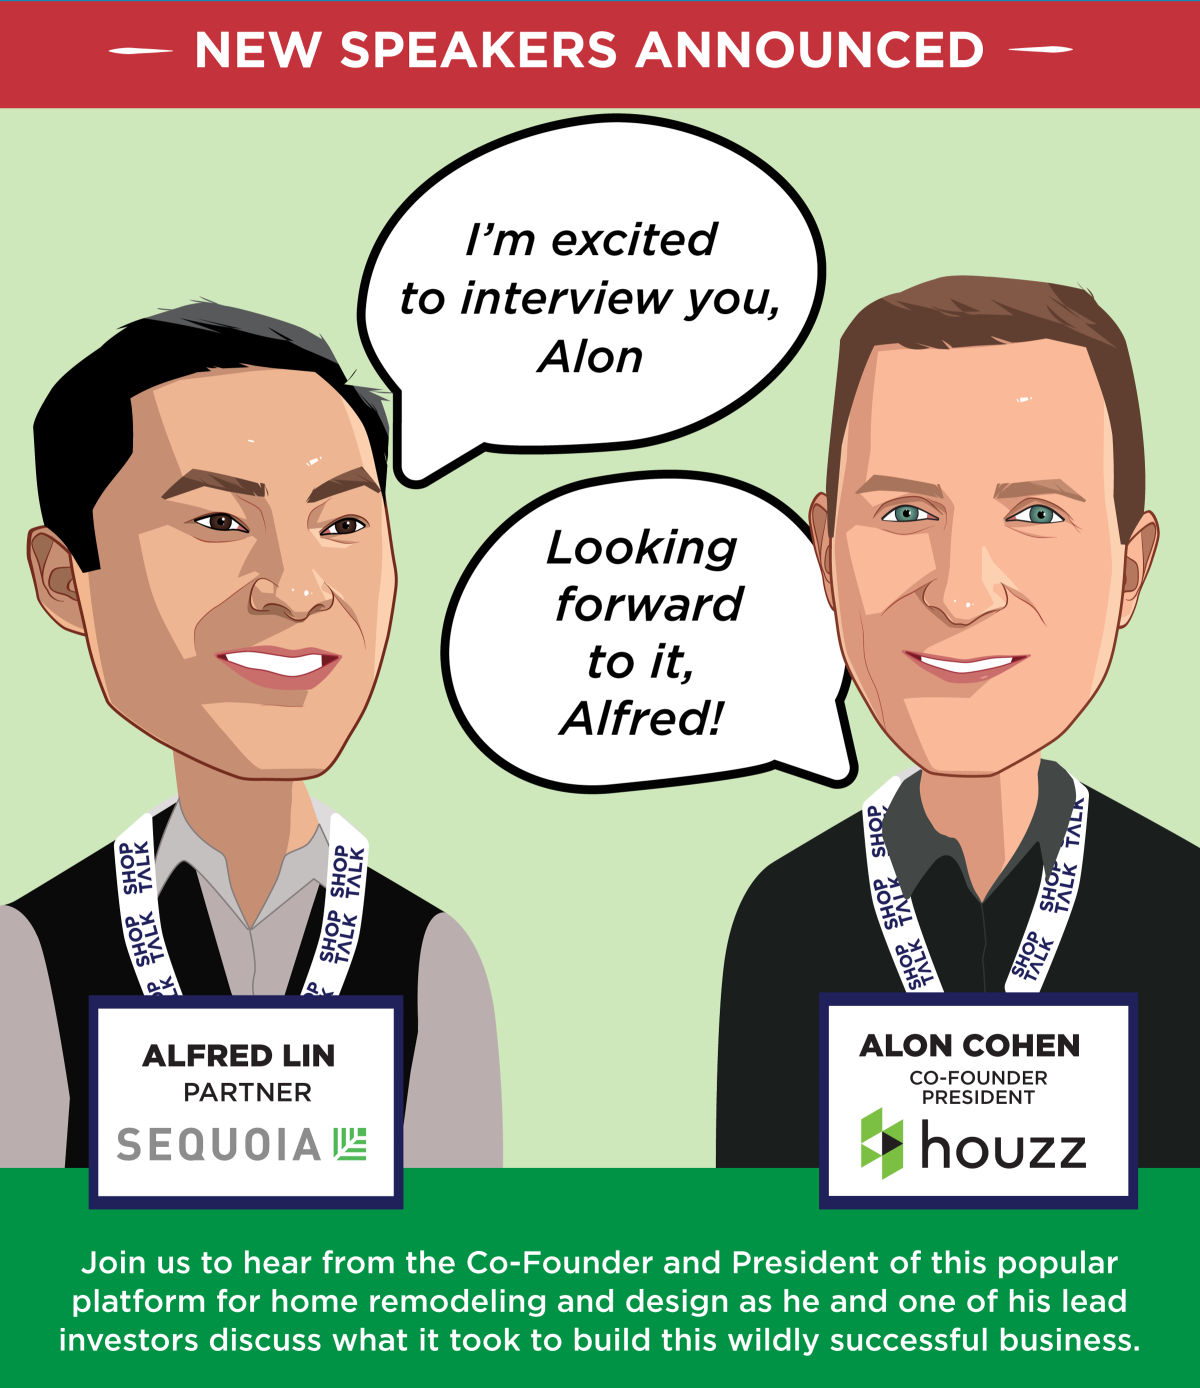 New Speakers Announced -- Alfred Lin, Partner, Sequoia -- Alon Cohen, Co-Founder and President, Houzz -- Join us to hear from the Co-Founder and President of this popular platform for home remodeling and design as he and one of his lead investors discuss what it took to build this wildly successful business. -- Get Your Ticket!